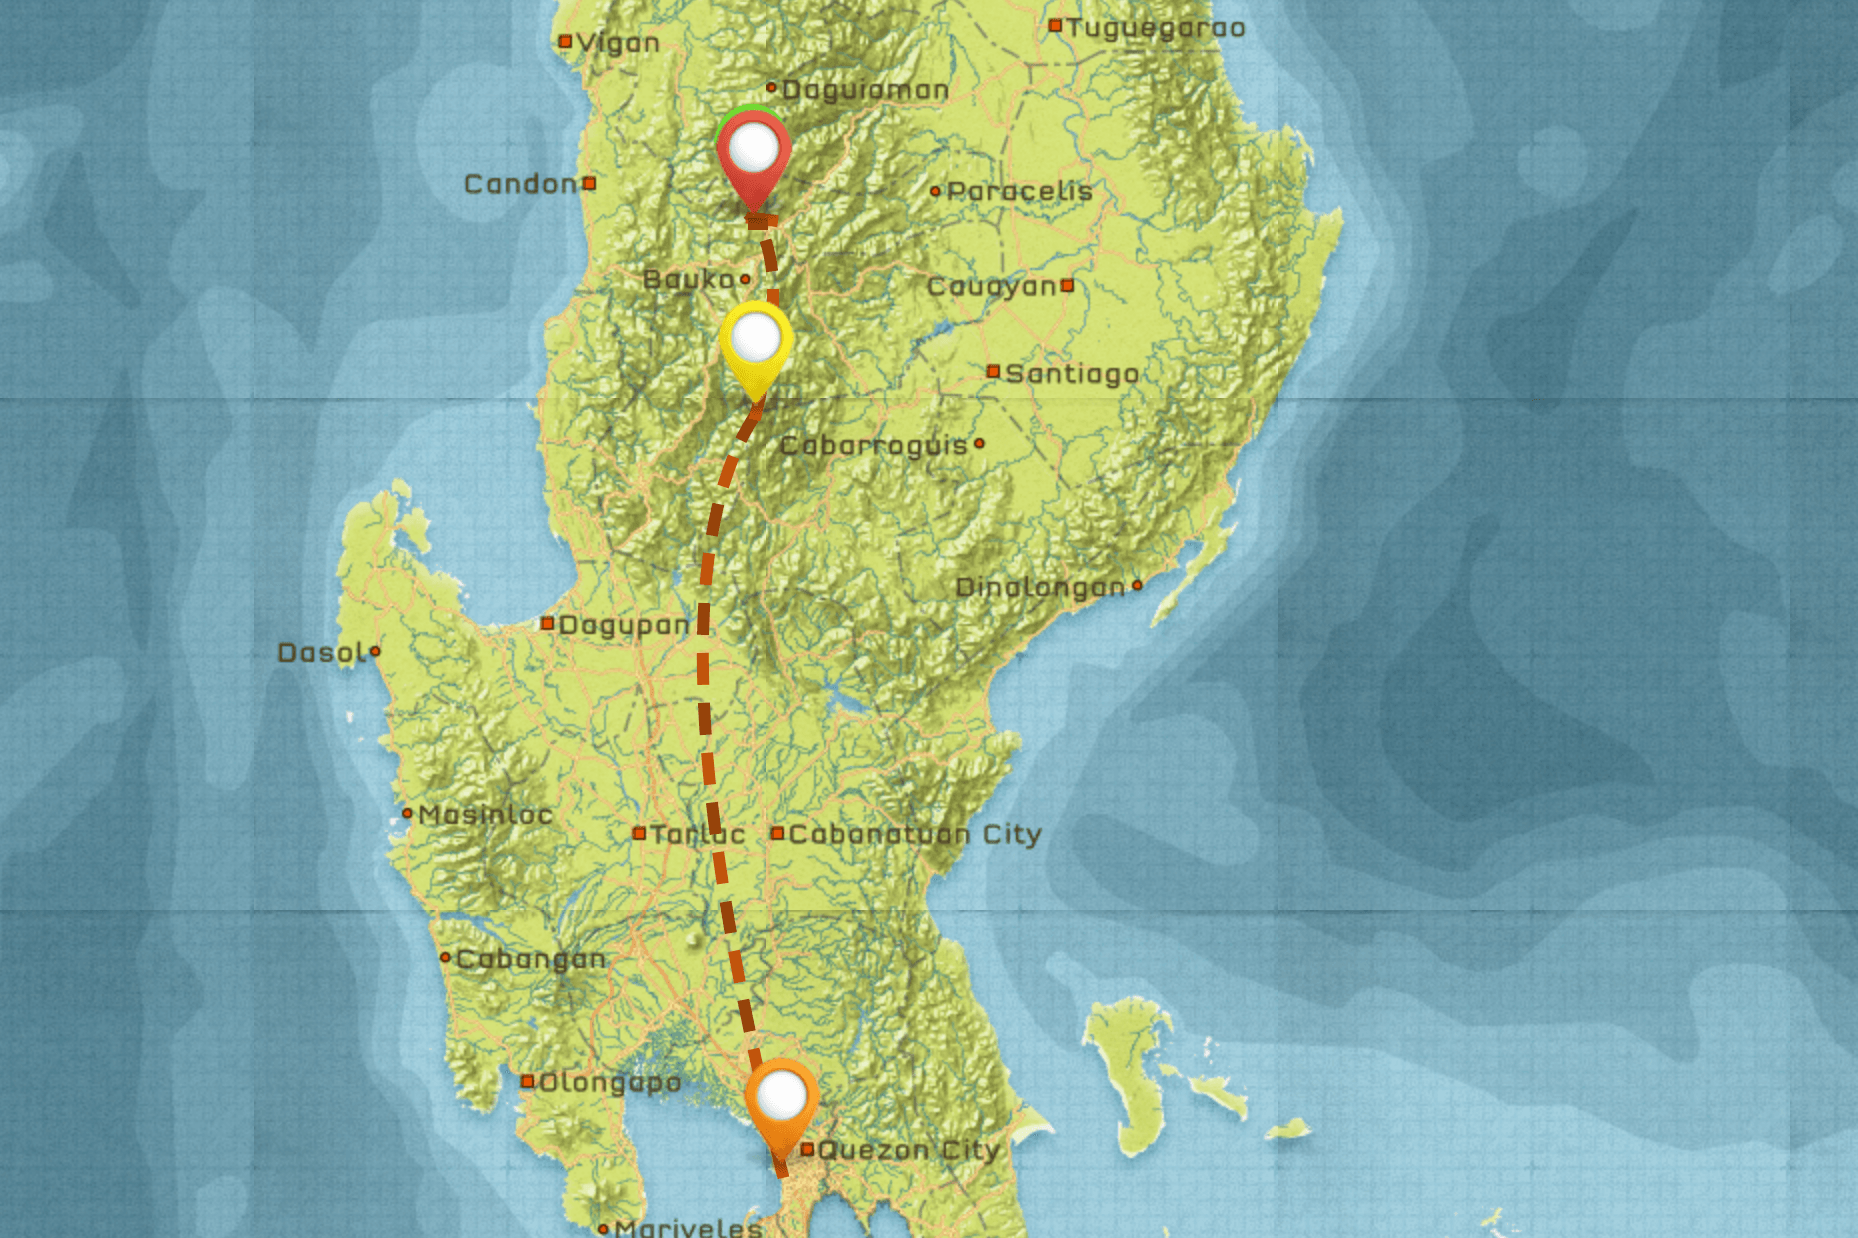 Backpacking The Philippines Itinerary #1